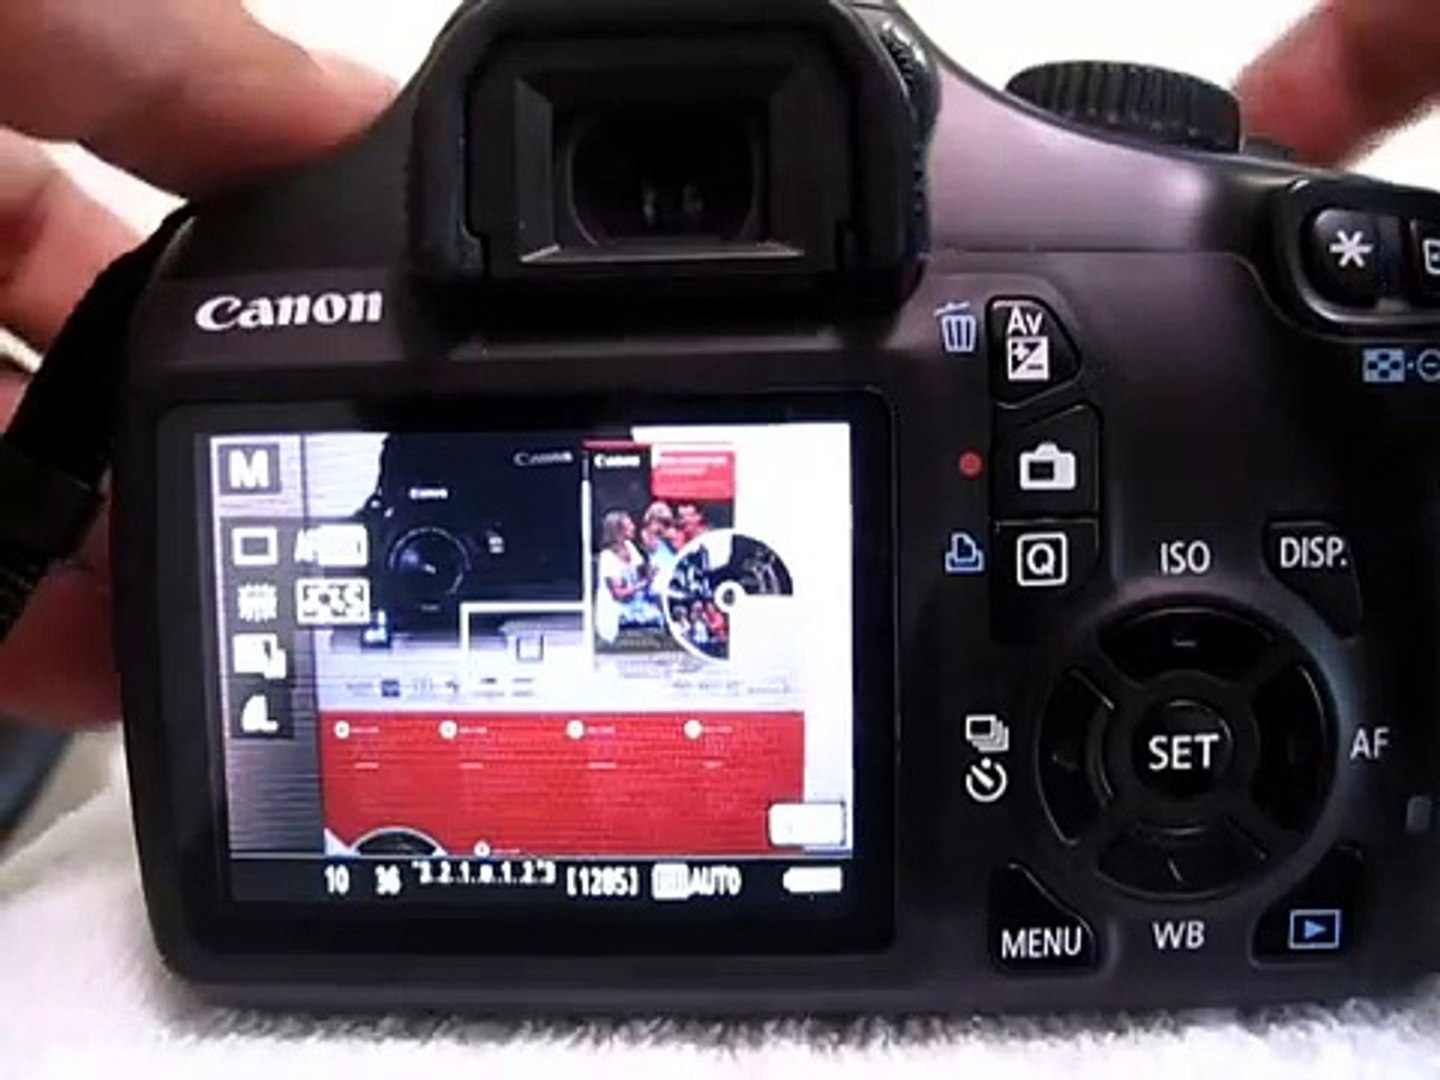 Canon 1100D (Rebel T3) - How to Use M-mode (Manual mode)